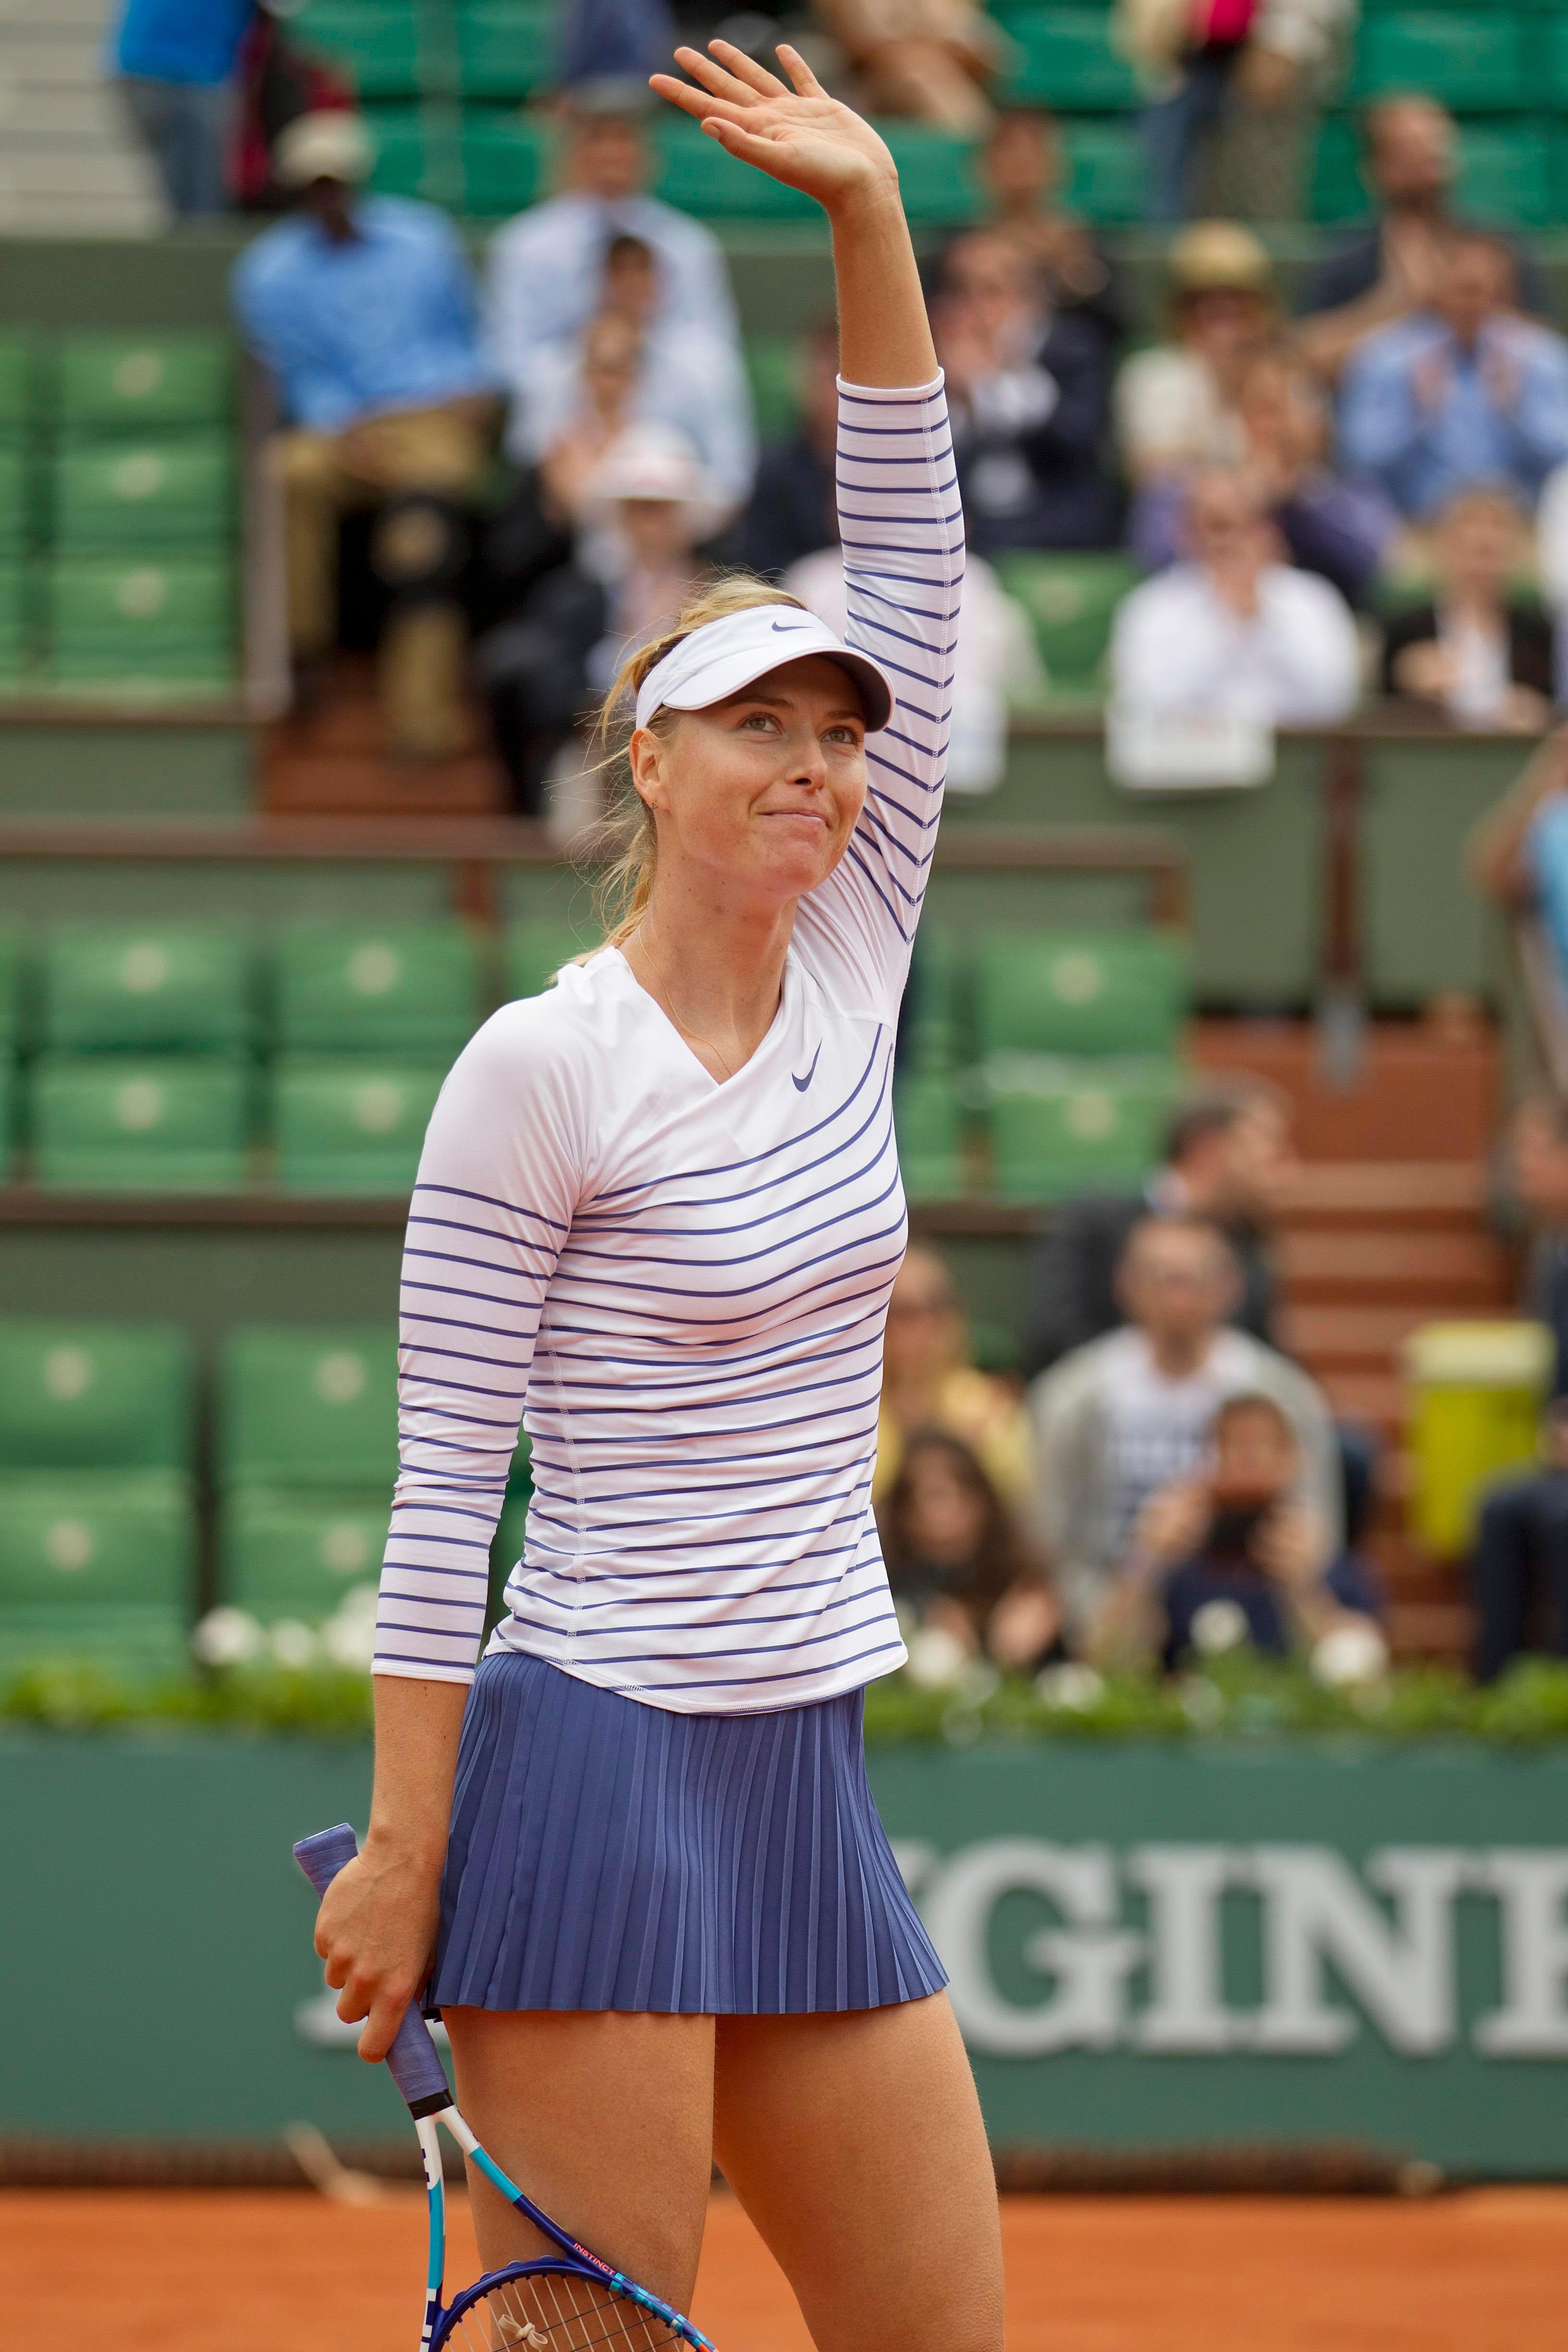 636306072704095994-USATSI-8583585 Maria Sharapova responds to French Open denial: Nothing can stop my dreams